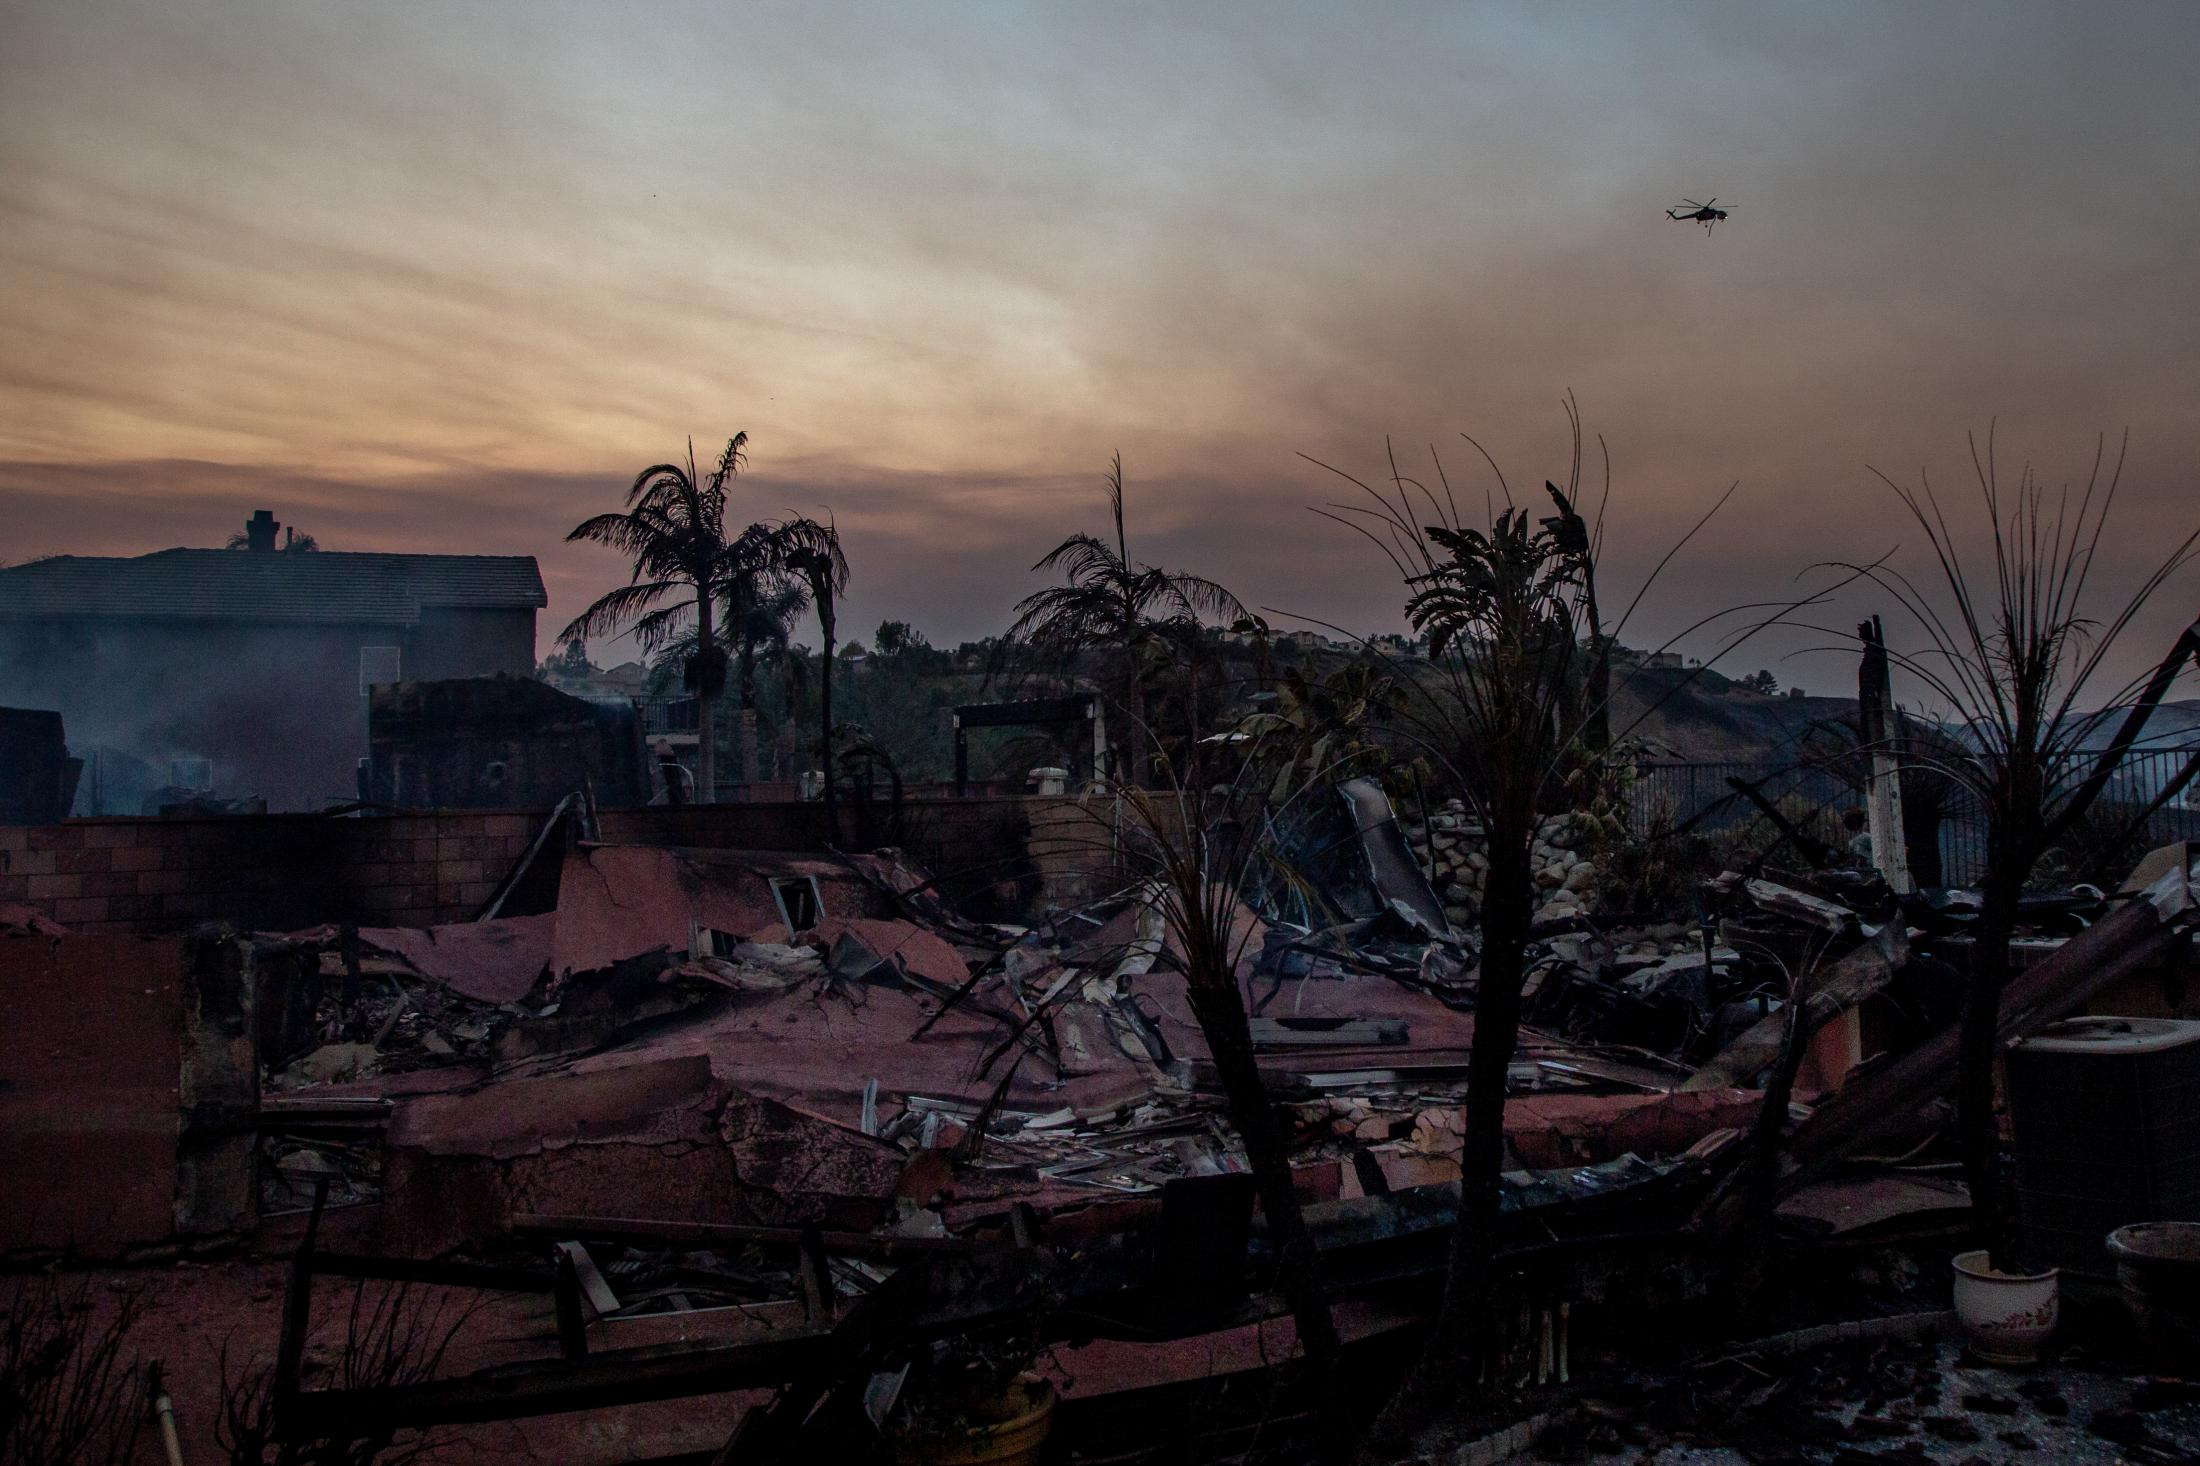 A helicopter flies over a neighborhood that has been destroyed by the wildfire. One thousand six hundred forty-three structures have turned to rubble and ash over a month of fire.